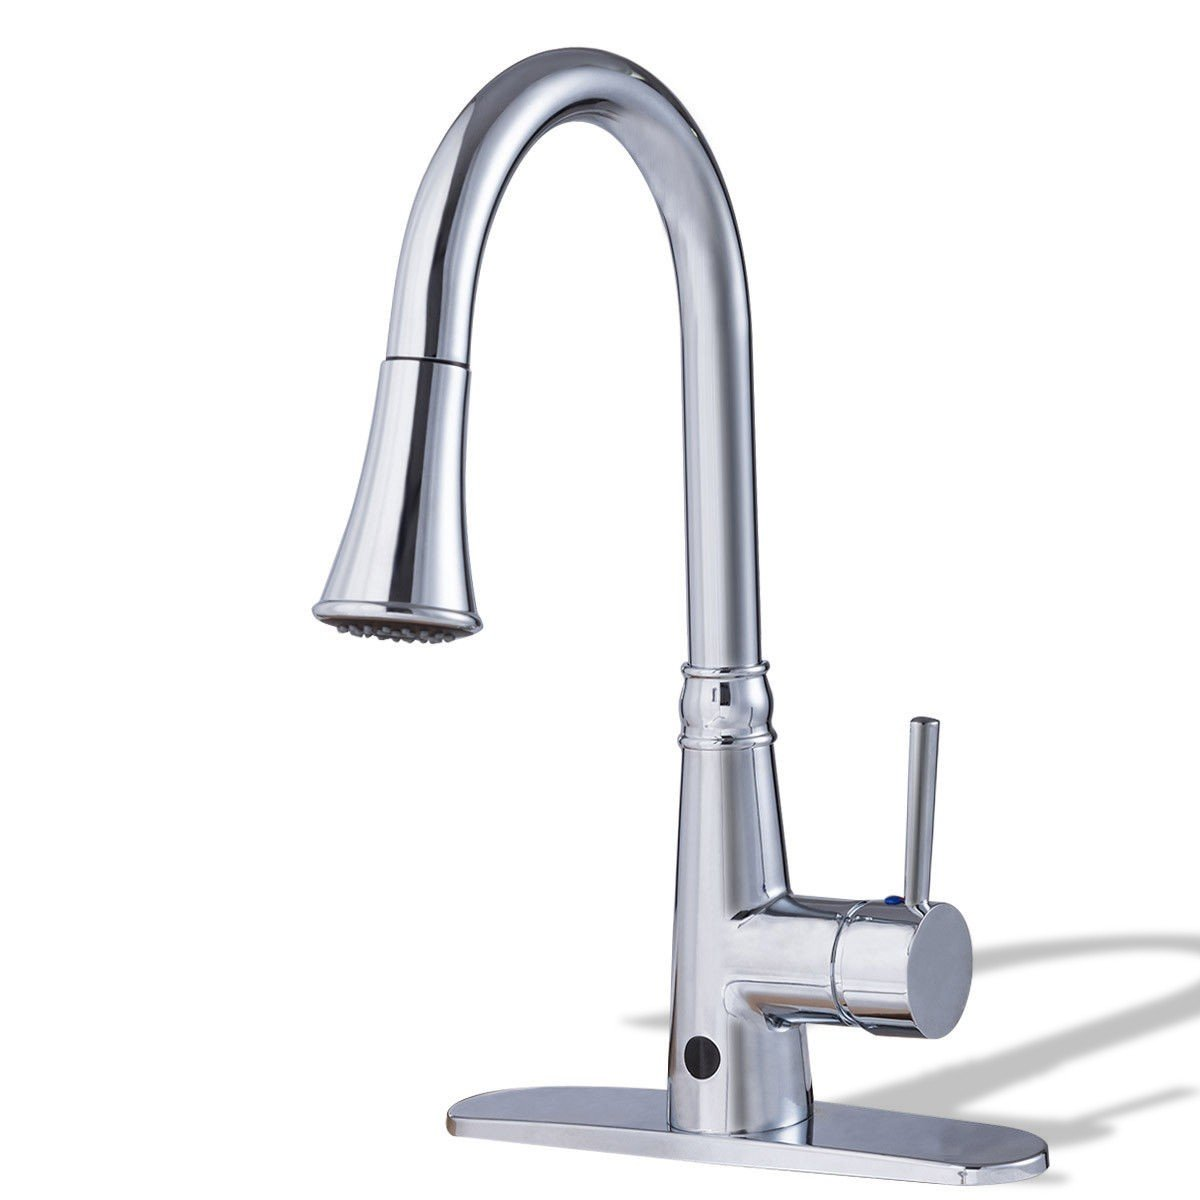 zwan Pull-Down Single Handle Dual Spray Chrome Kitchen Faucet with Ebook